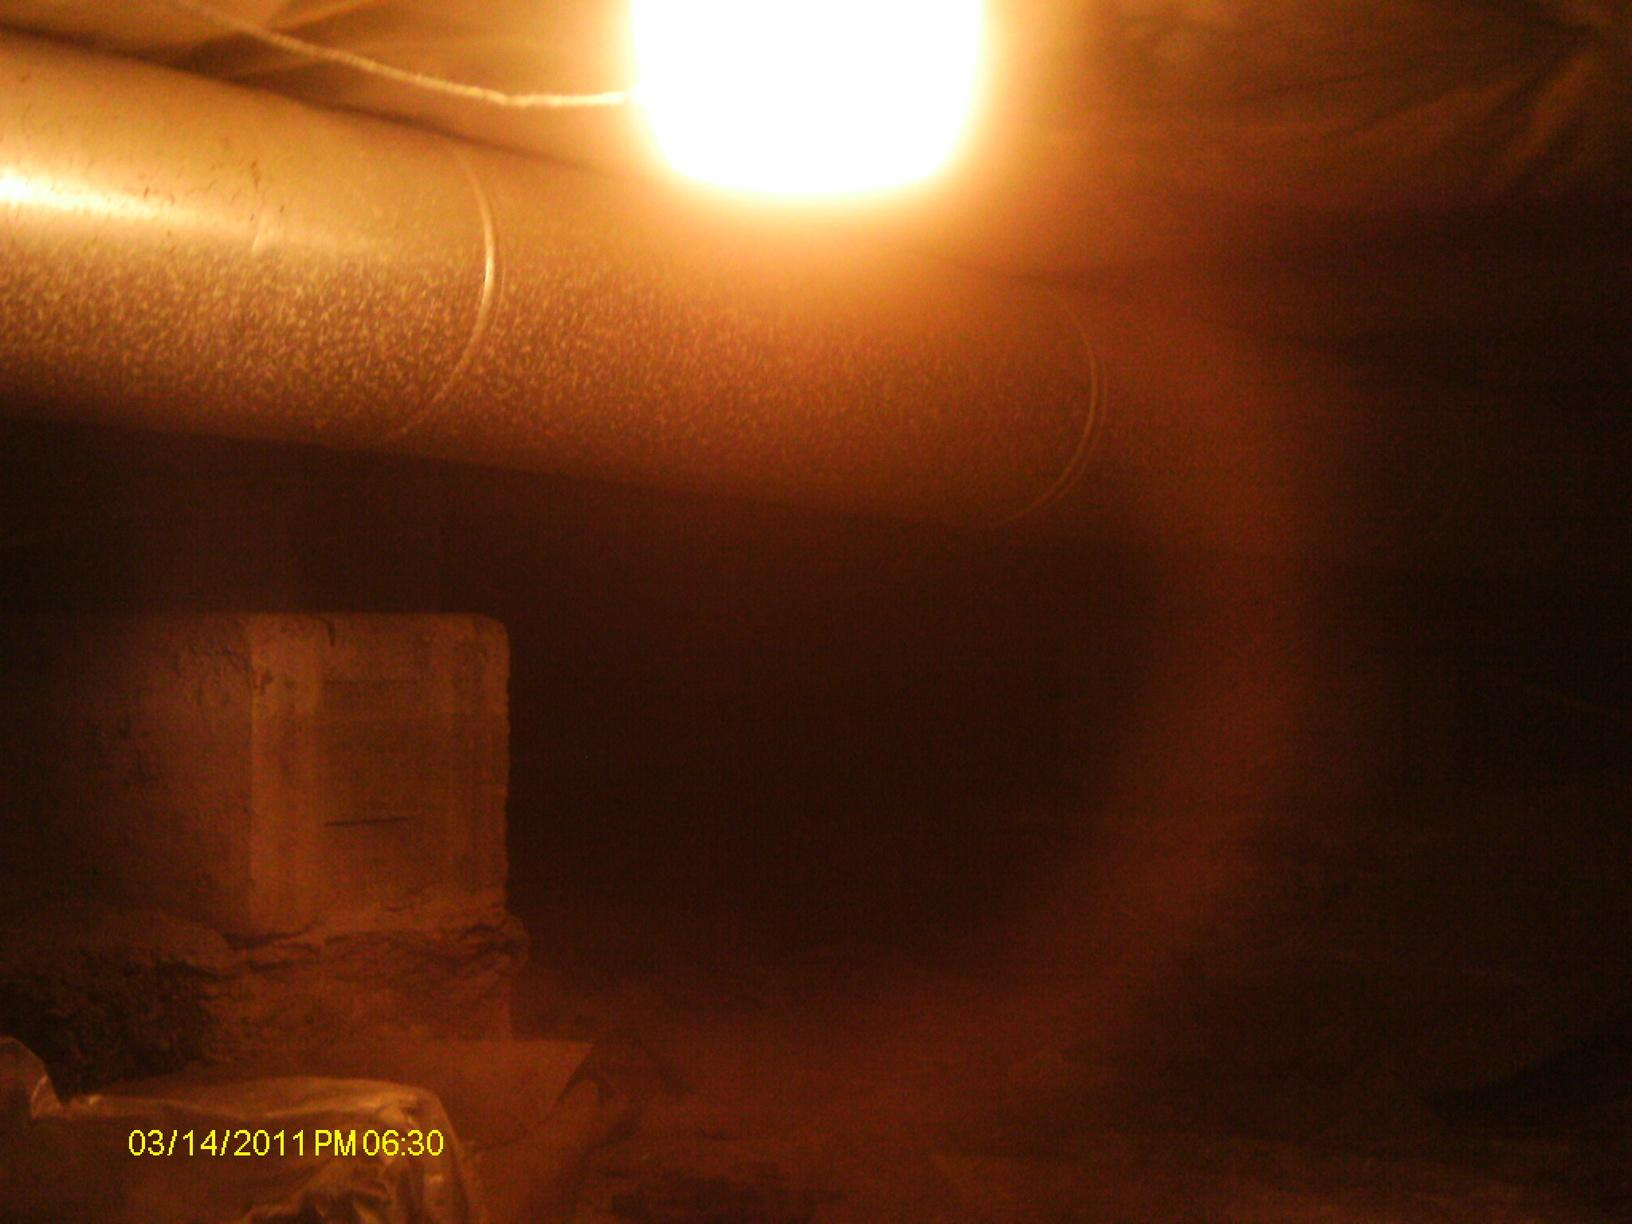 The crawl space before encapsulation reveals exposed earth, perfect situation to allow radon to seep in from the ground and circulate through out the house making the home hazardous for the occupants.